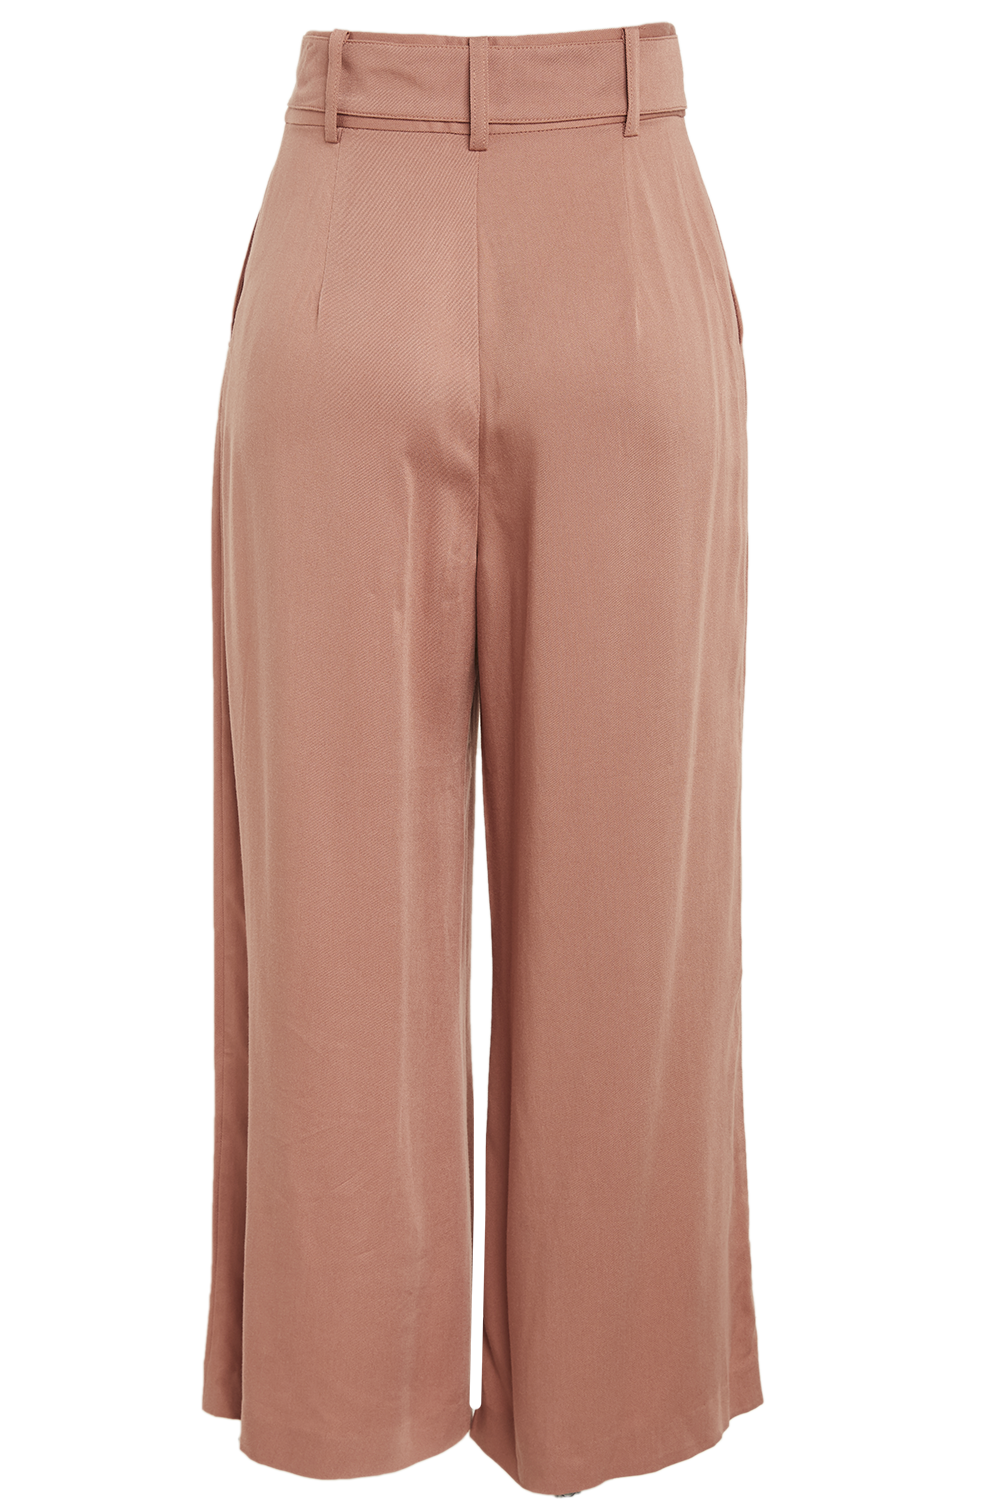 SUNSET CULOTTE in colour ARAGON